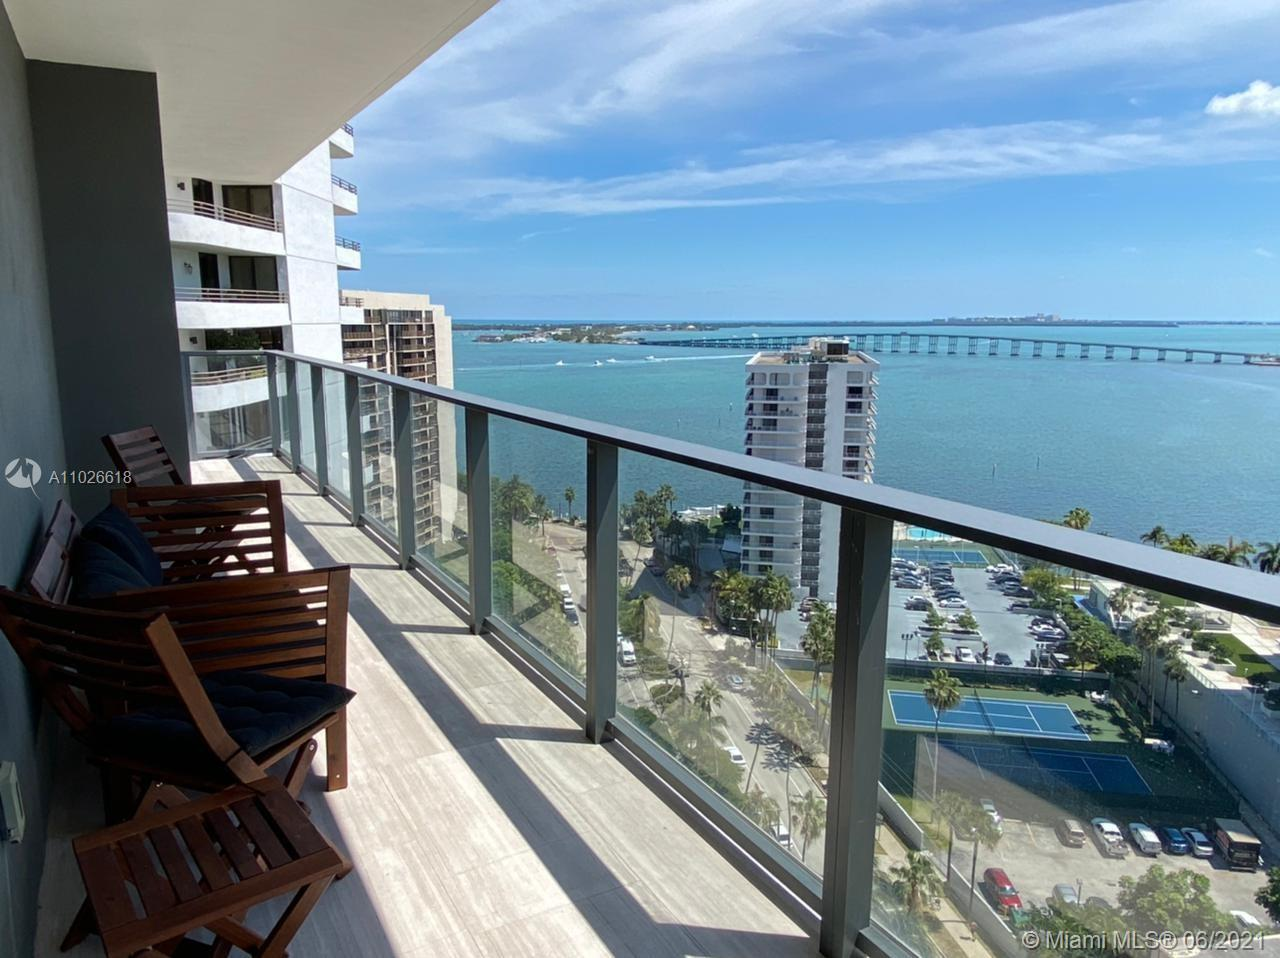 BEAUTIFUL  CORNER UNIT AT ECHO BRICKELL WITH  SPECTACULAR WATER  AND CITY VIEWS FROM EVERY ROOM, 2BD/2.5BA FURNISHED UNIT WITH MARBLE FLOORS THROUGHOUT, ITALIAN KITCHEN WITH GLASS CABINETRY AND TOP OF THE LINE APPLIANCES SUB-ZERO AND BOSCH, FLOOR TO CEILING WINDOWS,SPACIOUS TERRACE  WITH SUMMER KITCHEN,SMART HOME TECHNOLOGY INCLUDED TO CONTROL SURROUND SYSTEM,WINDOWS TREATMENTS, AC AND MORE. 2 PARKING SPACES WITH ROBOTIC PARKING SYSTEM. BOUTIQUE BUILDING WITH ONLY 180 UNITS,STATE OF THE ART AMENITIES,INCLUDING INFINITY EDGE POOL WITH PANORAMIC WATER VIEWS AND DECK WITH FIVE STARS  RESORT SERVICE RESTAURANT, BAR, SPA, GYM,PET WALKER, 24/7 CONCIERGE AND VALET PARKING. WALKING DISTANCE FROM SHOPS AND RESTAURANTS. LOCATION, LOCATION!!